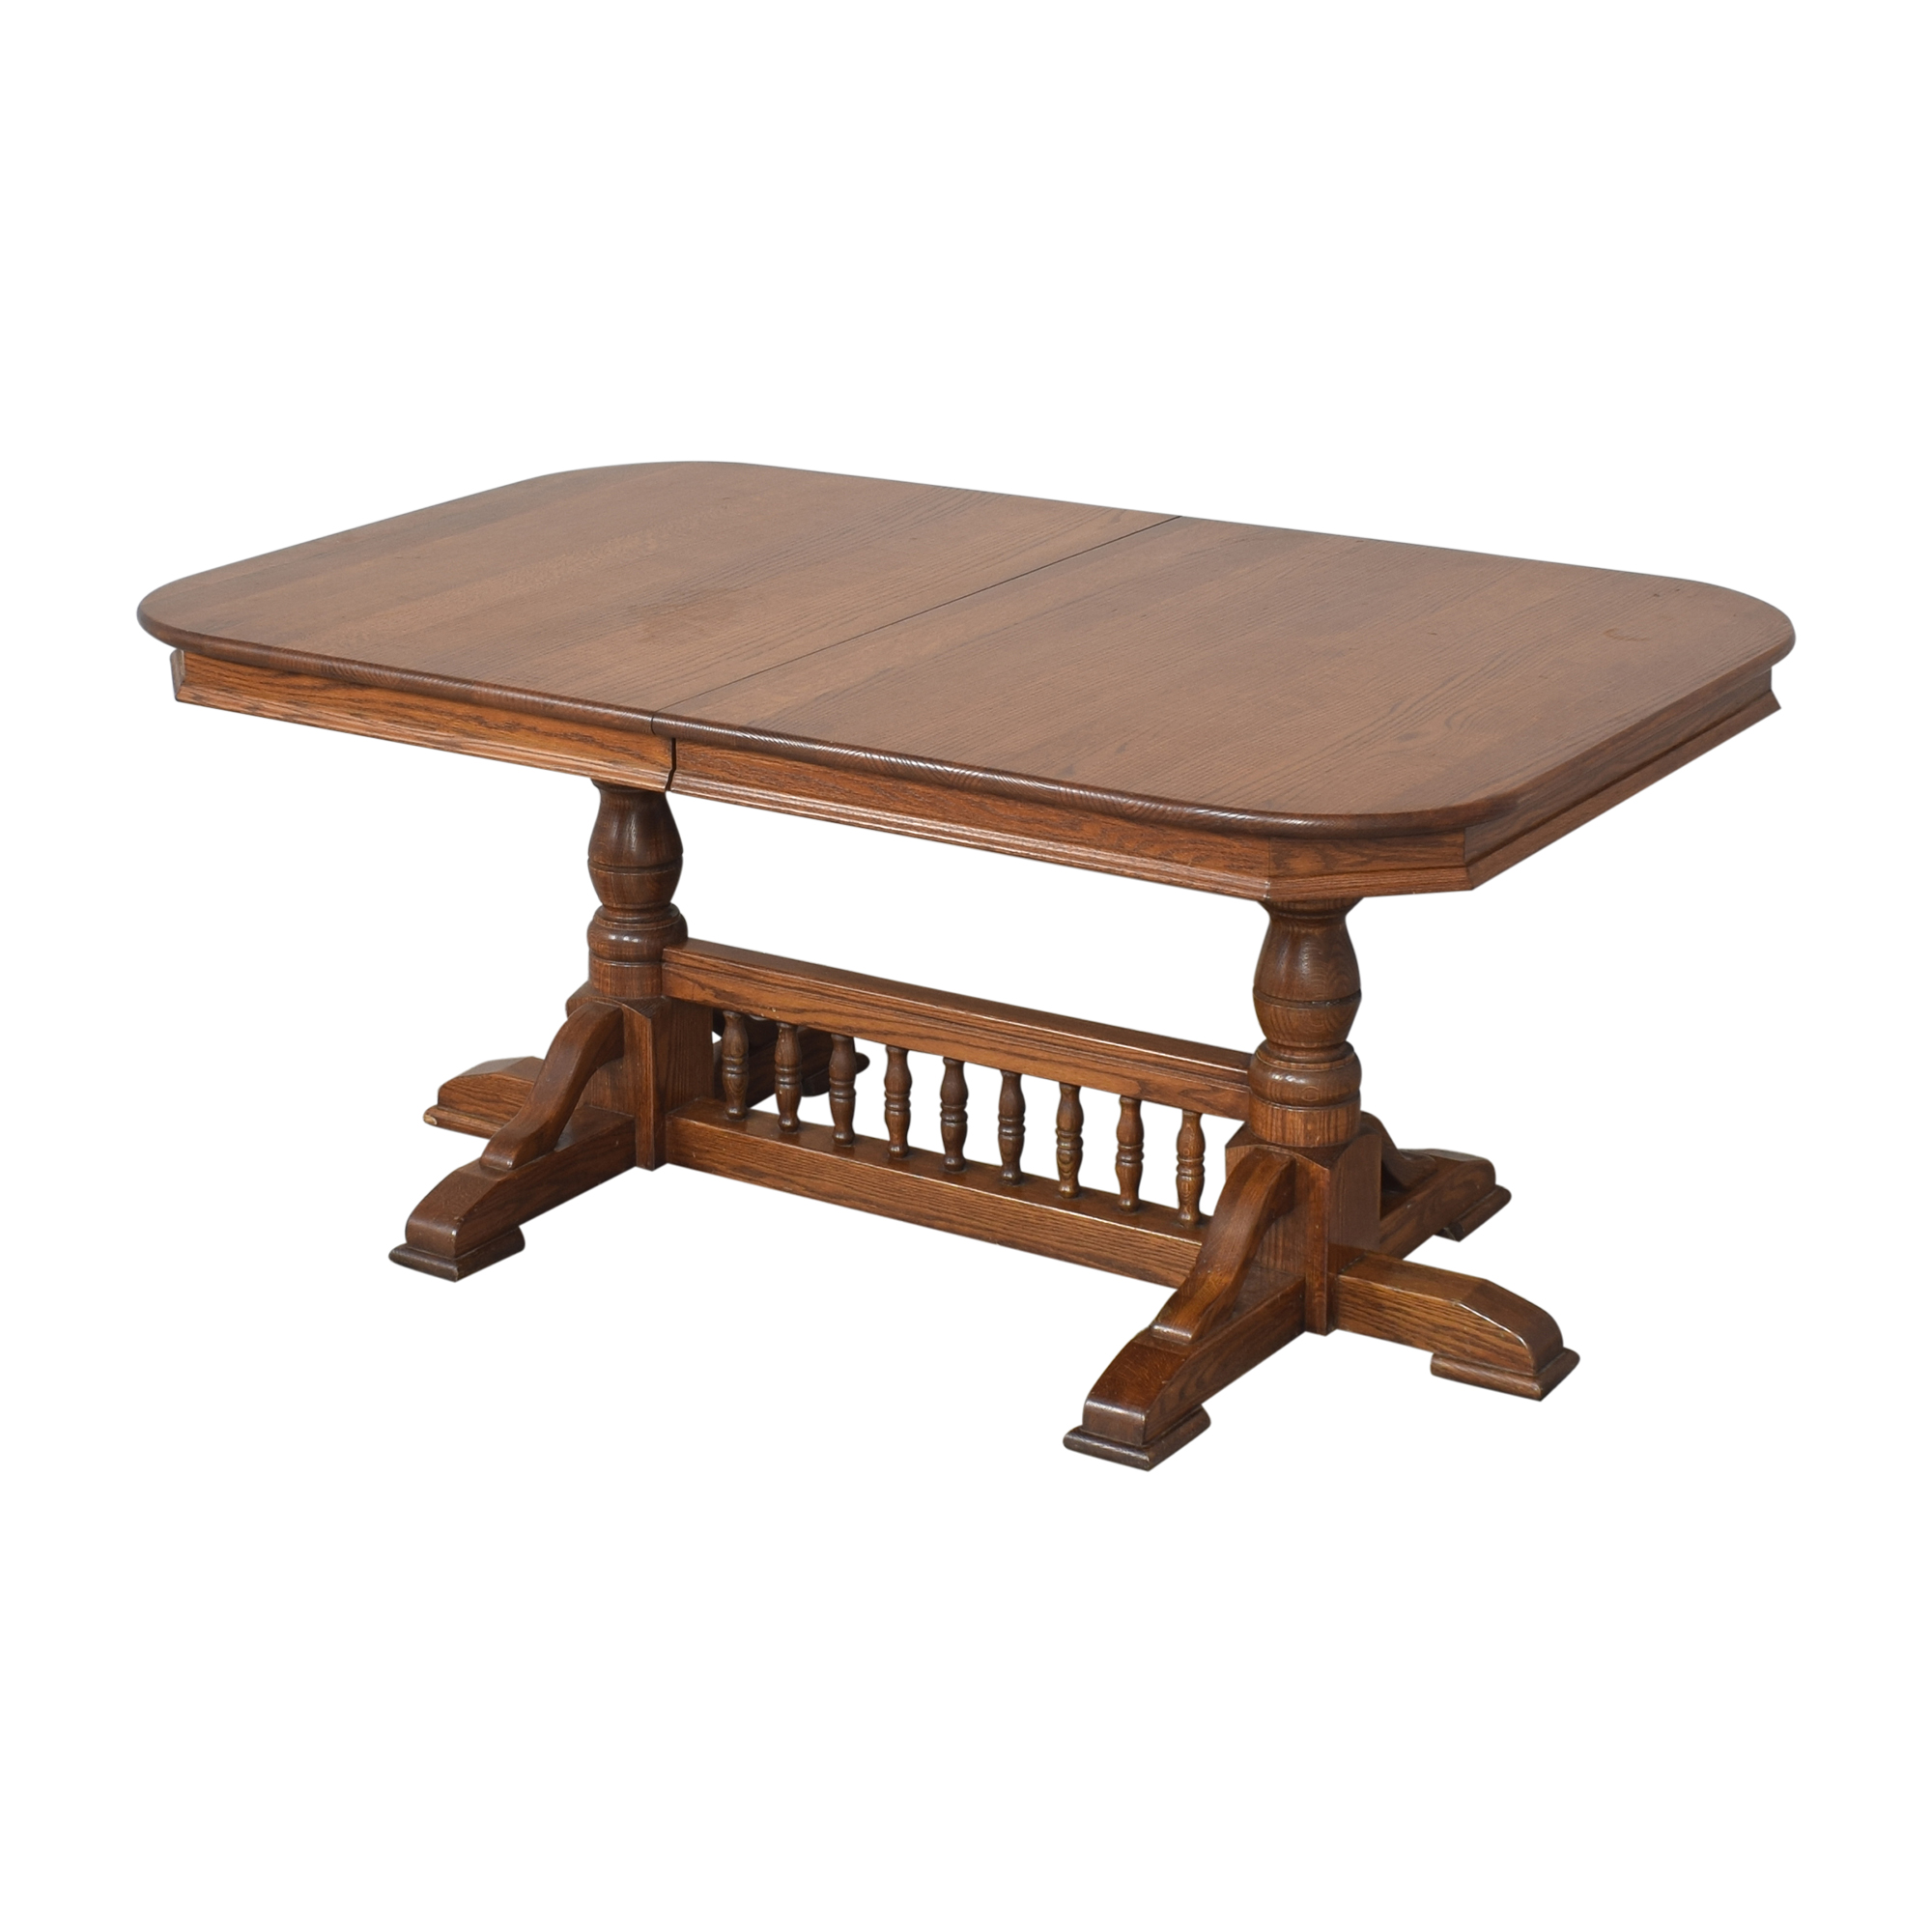 Trestle Dining Table price